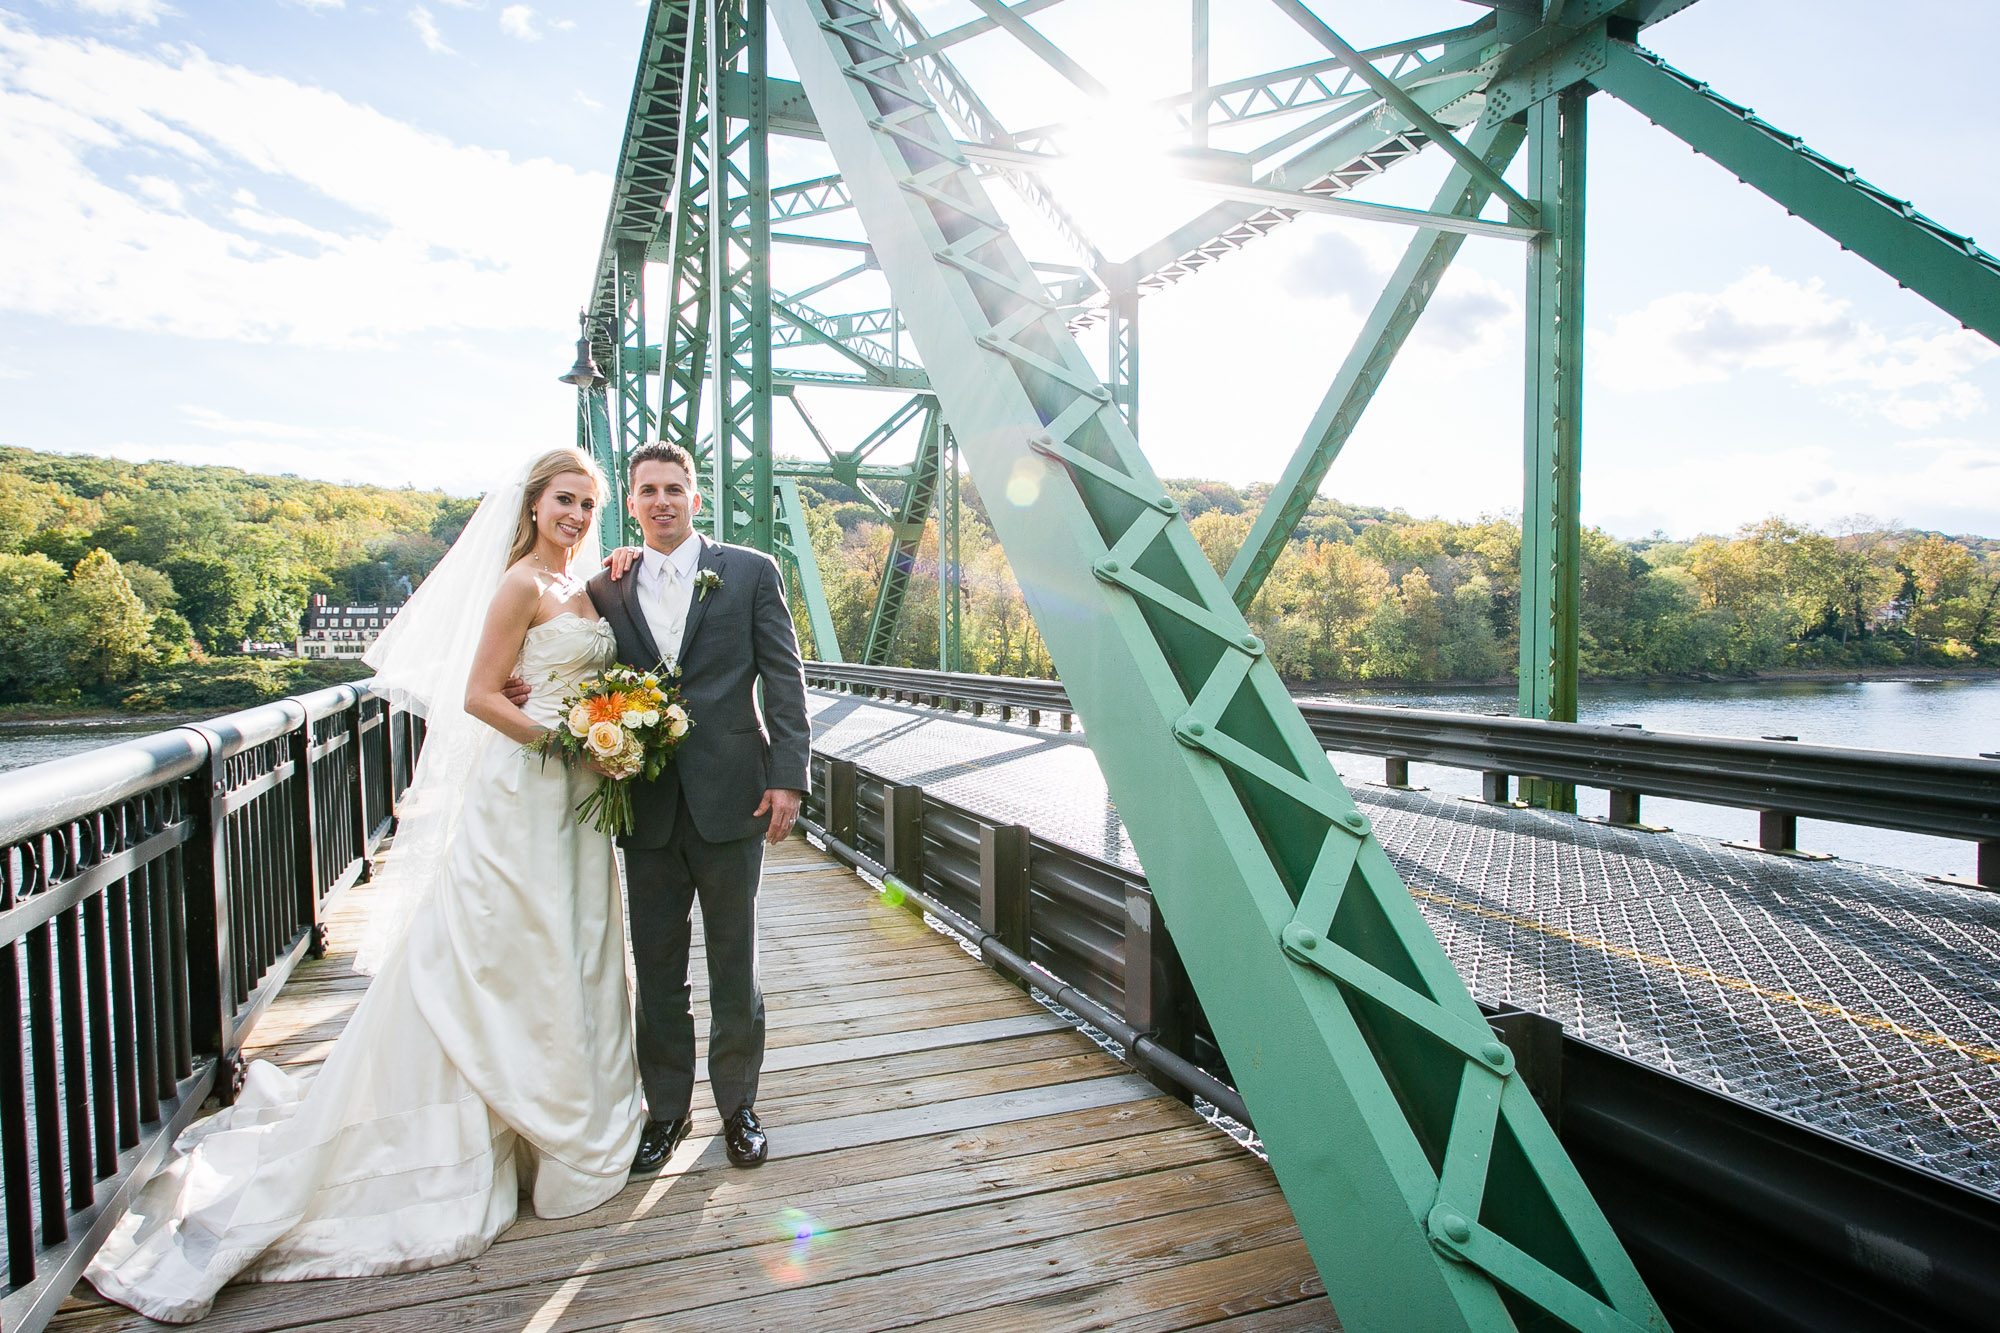 Amazing Wedding Photographer in Central NJ - Jenna Perfette Photography